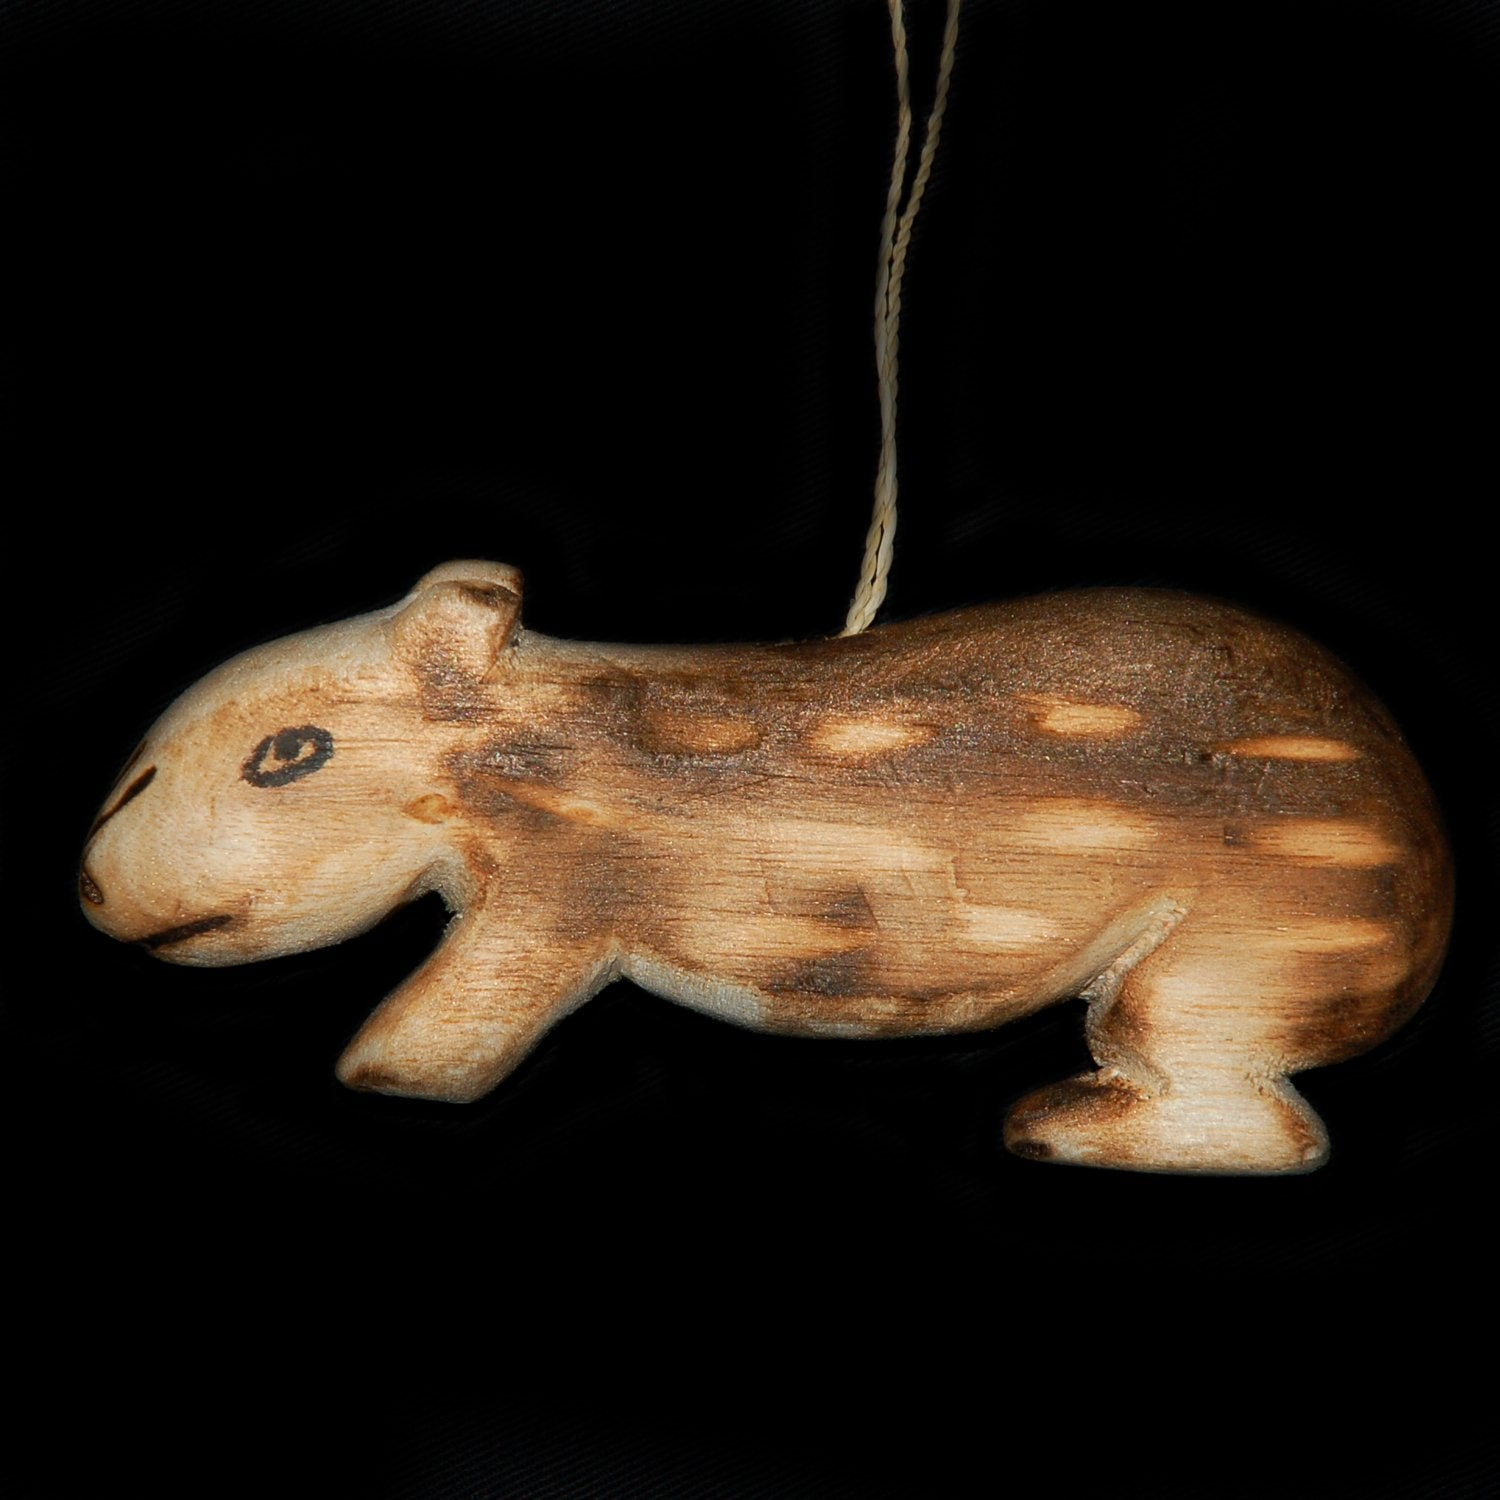 FAIR-TRADE CHRISTMAS TREE BALSA WOOD ORNAMENT - PACA - CARVED BY ARTISAN FROM PERUVIAN AMAZON